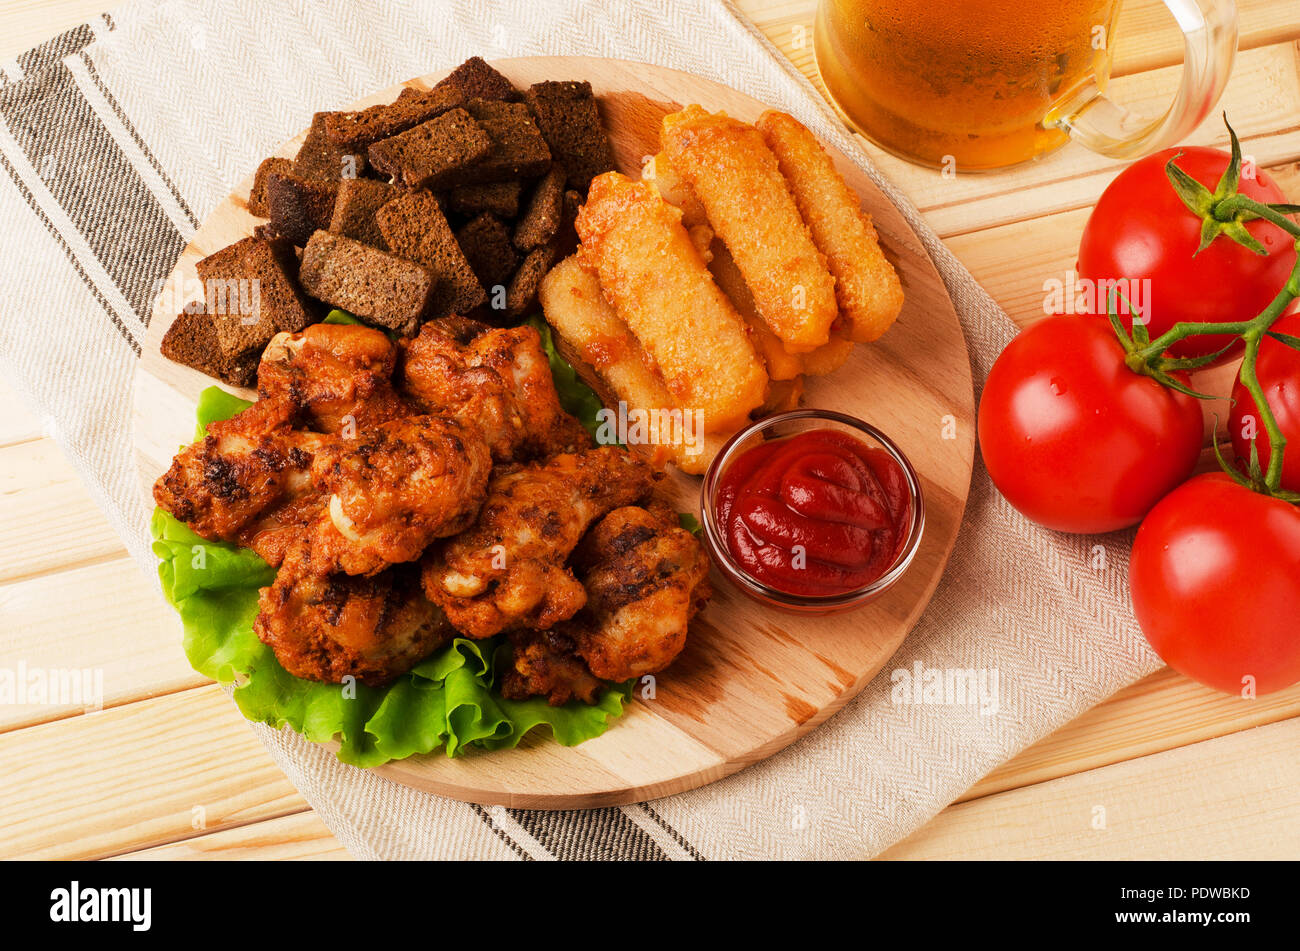 Fried wings, dried bread and cheese sticks with mug beer, served with sauces on a wooden background Stock Photo